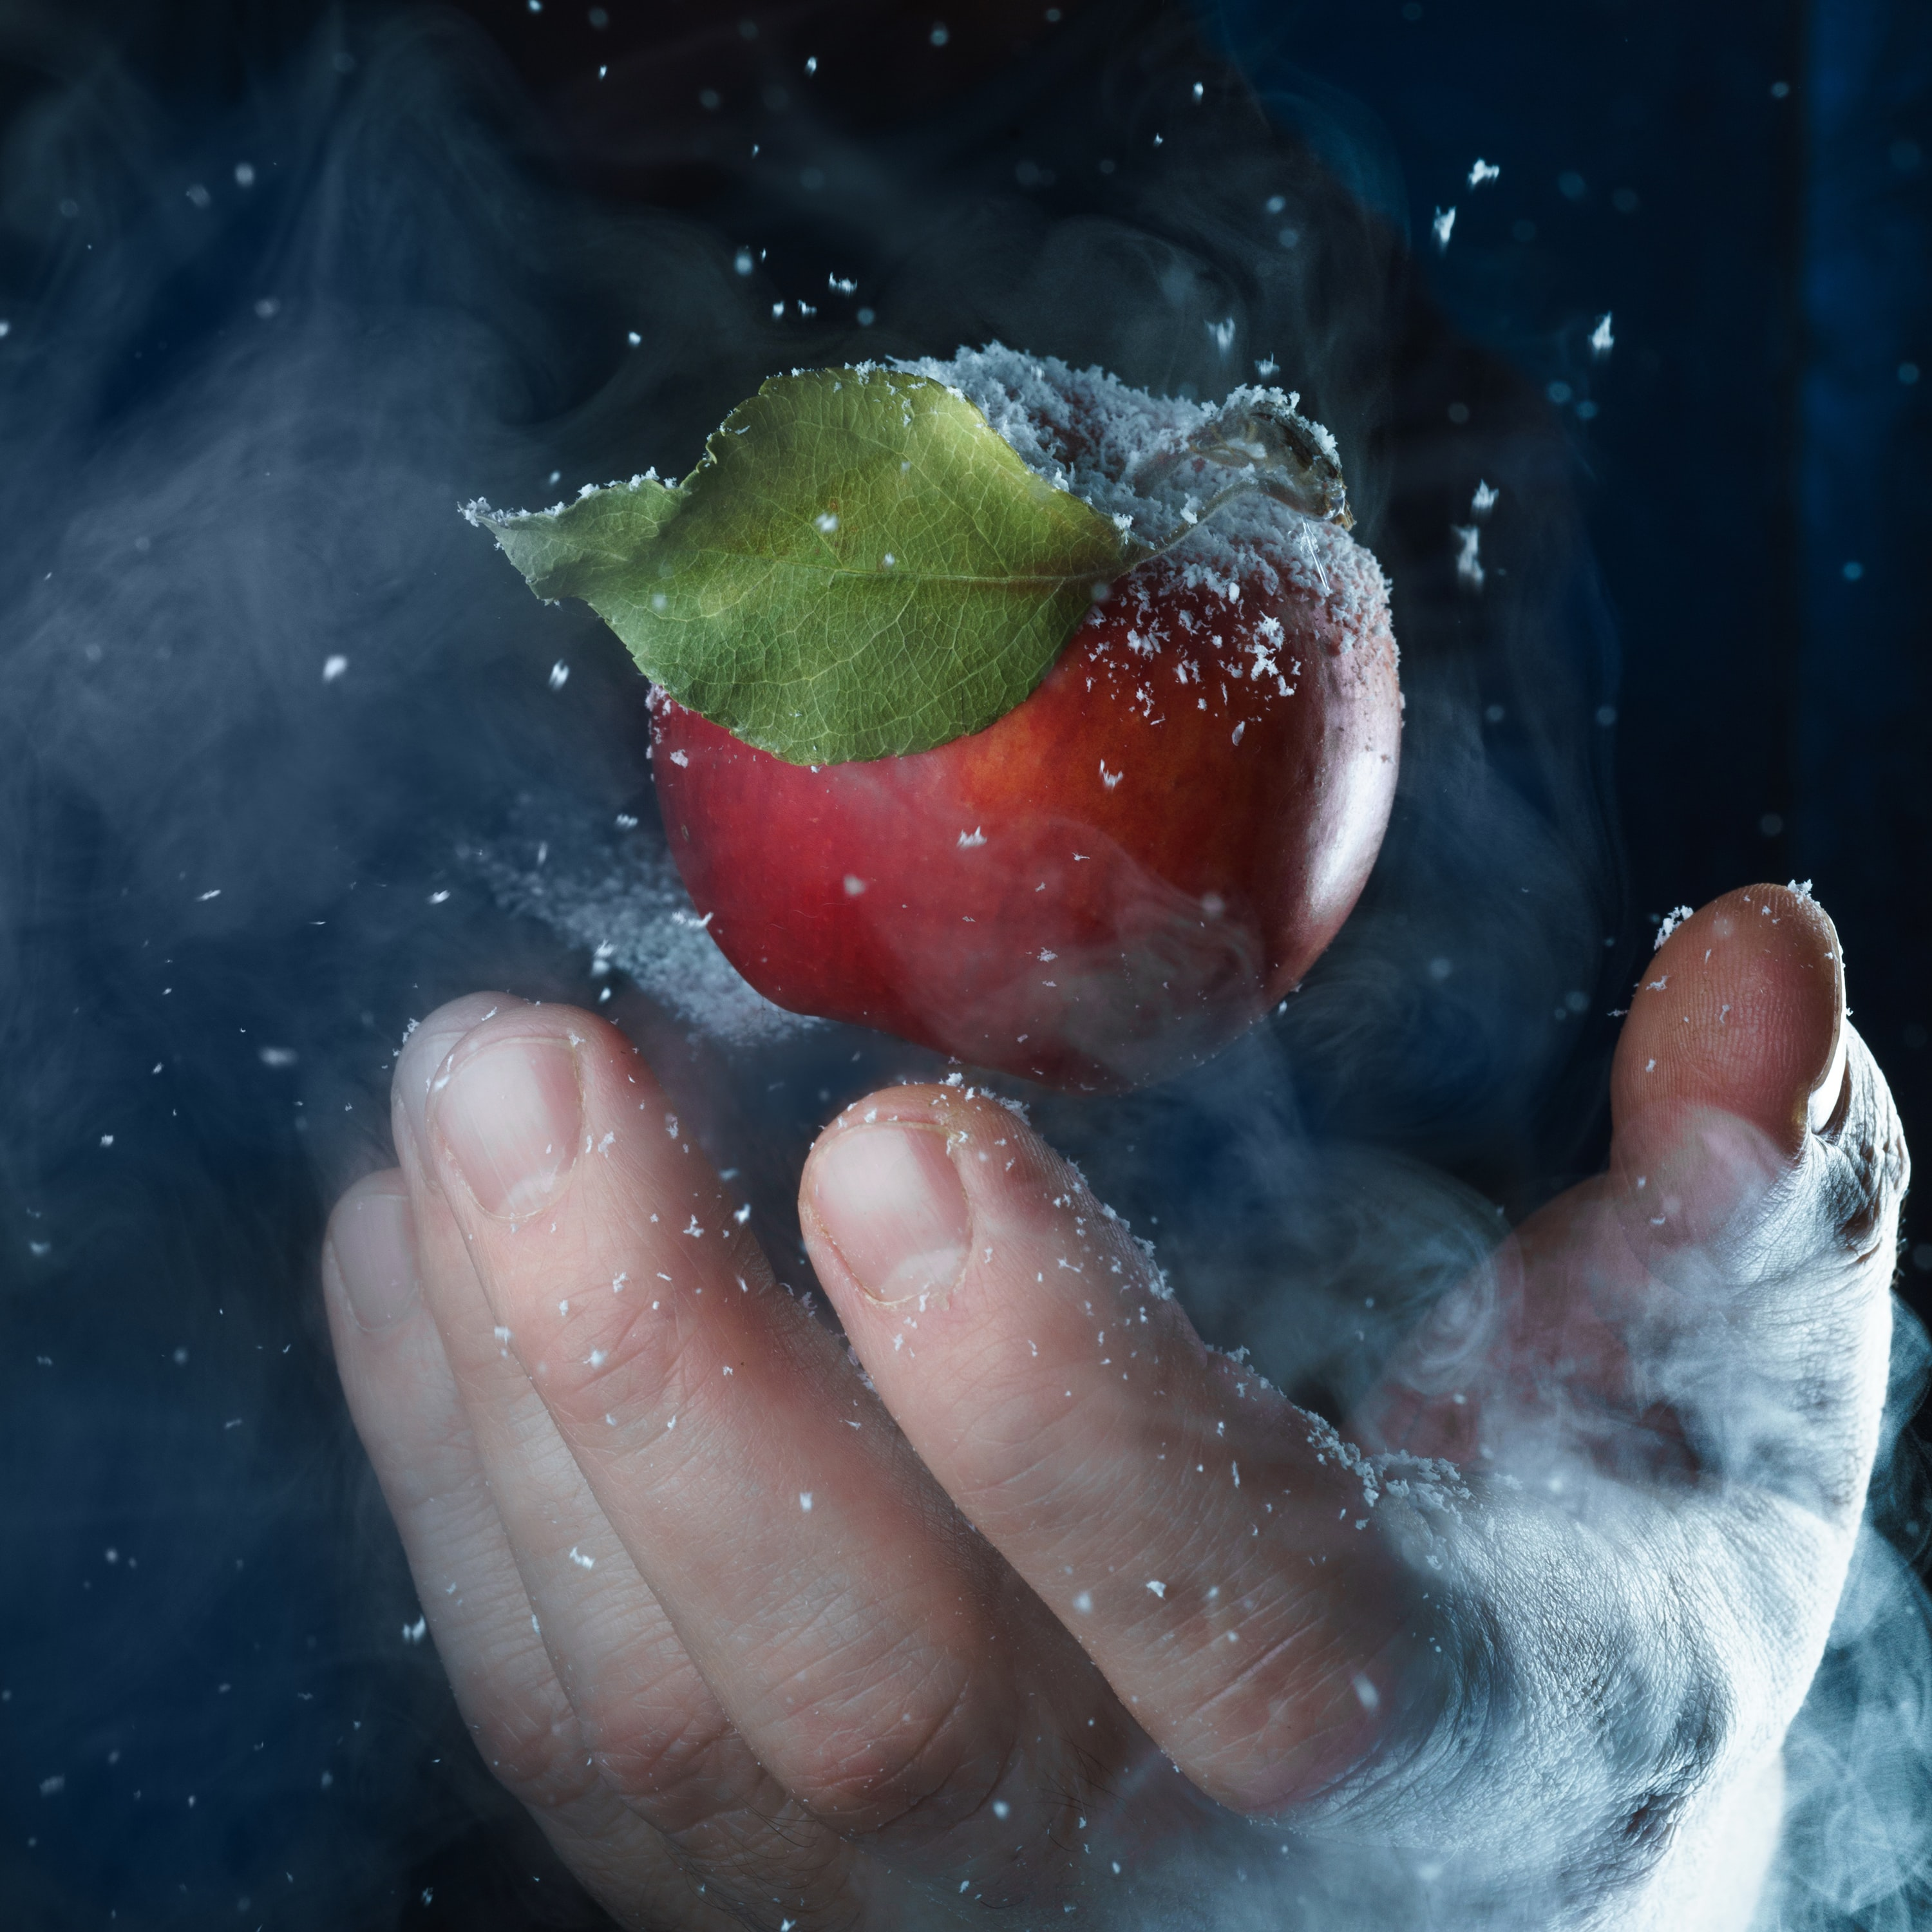 147766 download wallpaper Food, Apple, Hand, Snow, Steam screensavers and pictures for free